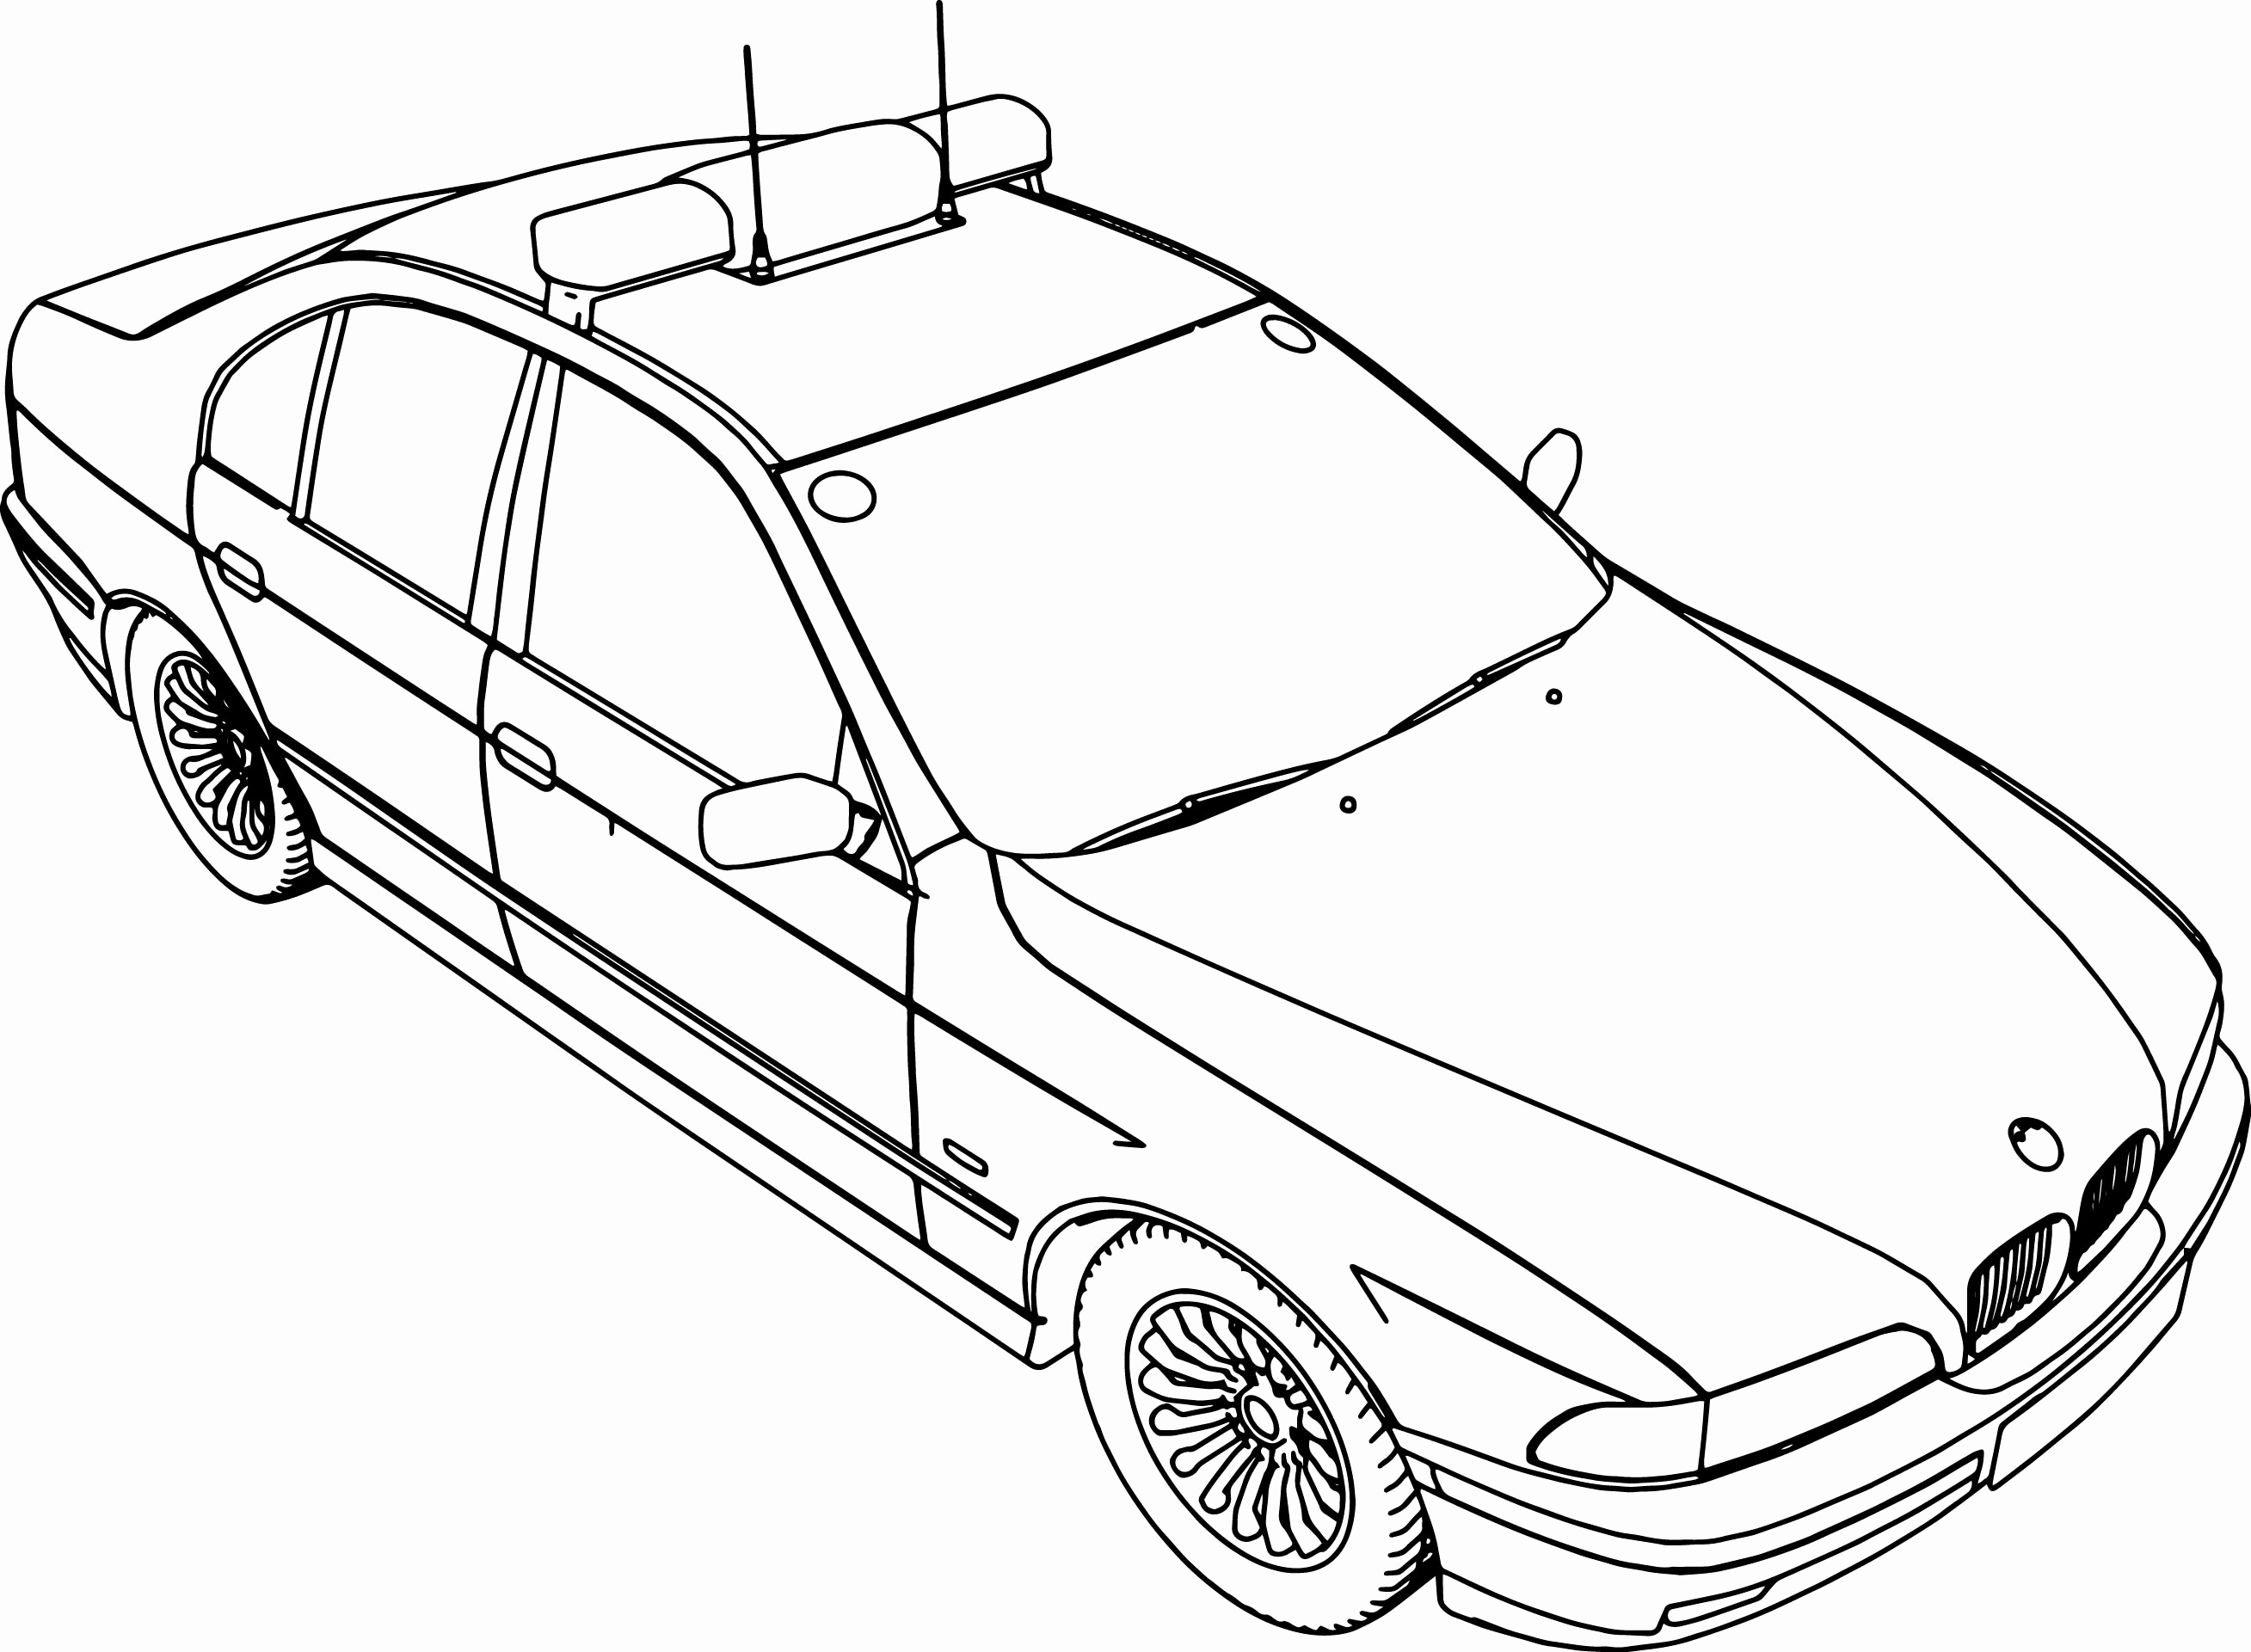 audi i8 box wiring diagram Audi R50 the best free bmw coloring page images download from 50 free audi a4 audi i8